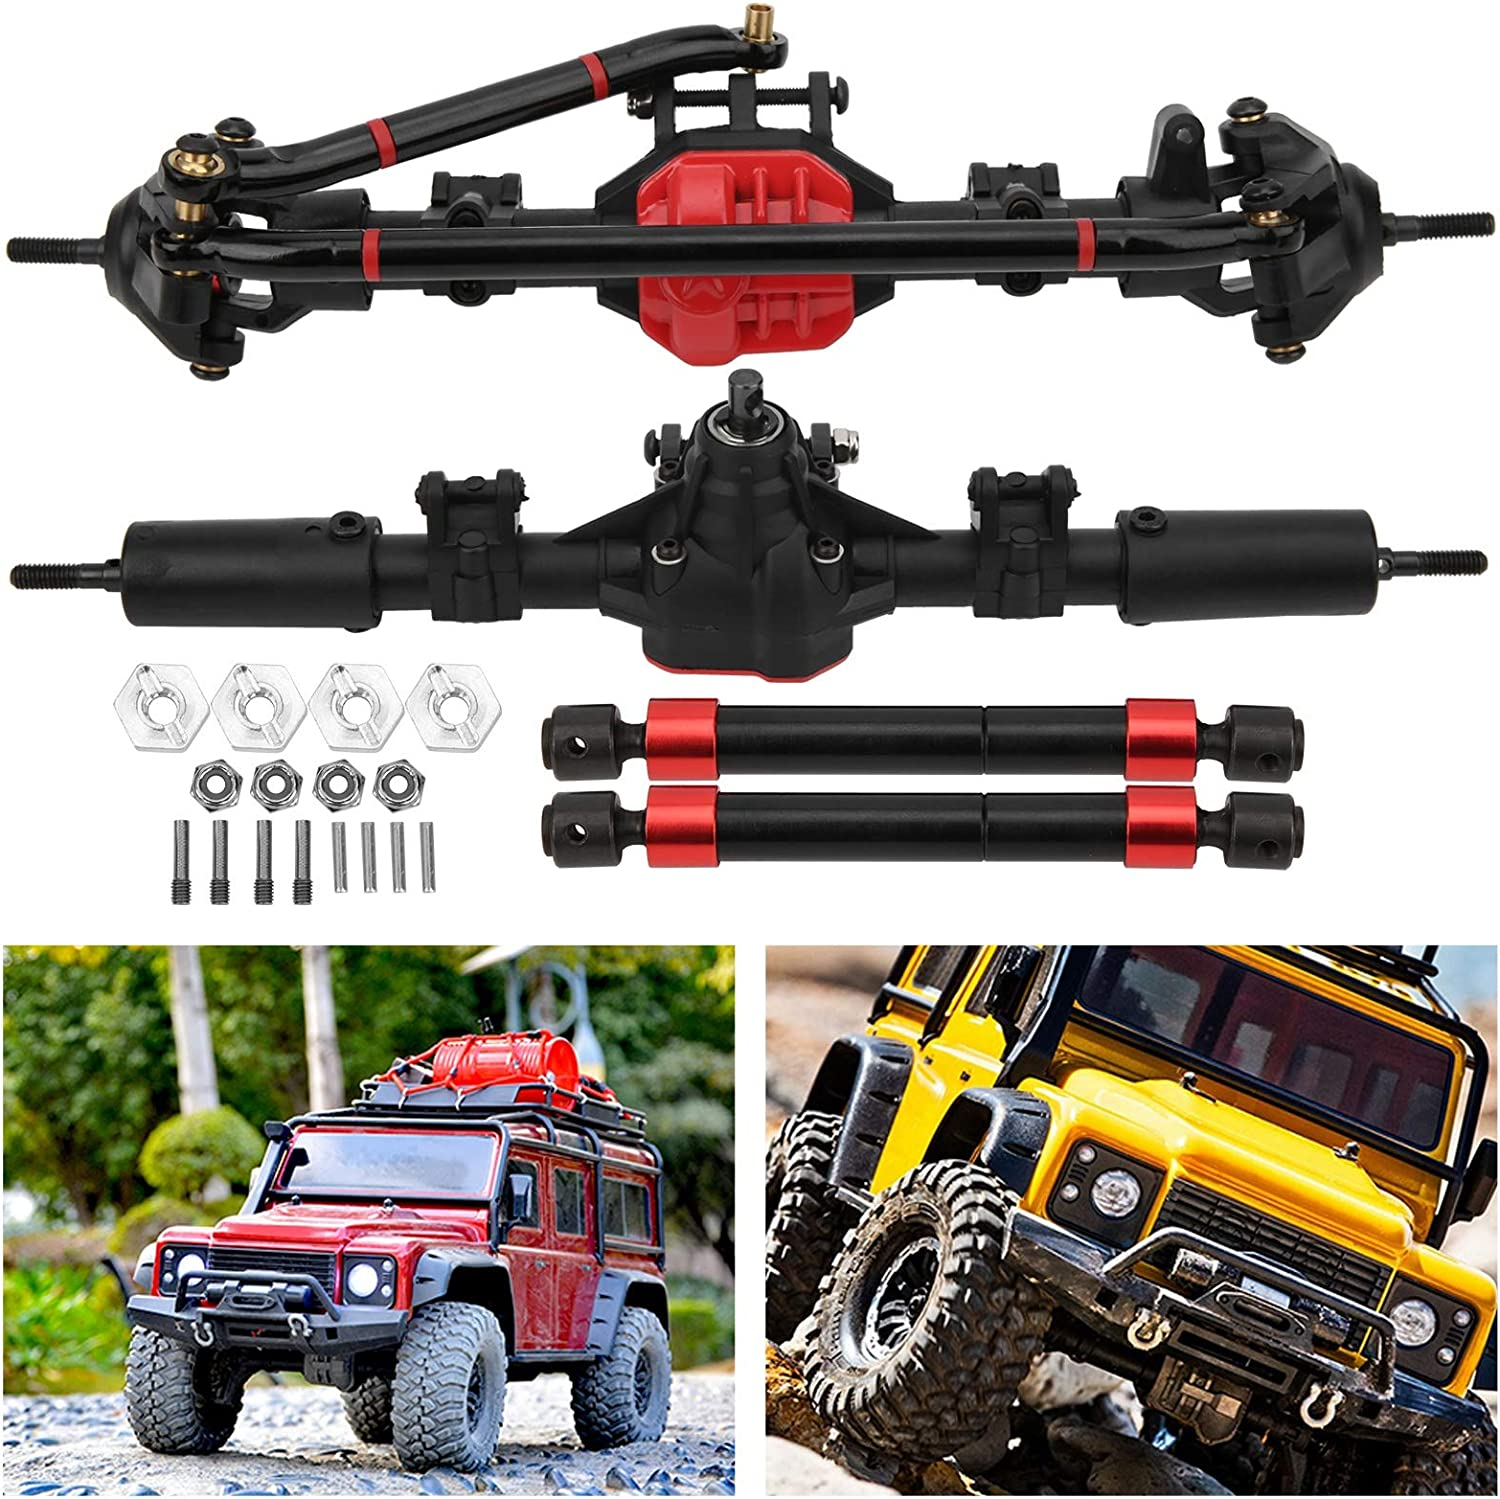 Natruss Front Complete Axle with 2pcs Metal Drive Shaft Nylon Injection Molding Shell Complete Axle for RC Car Lovers 1//10 Axial SCX10 I and SCX10 II RC Car